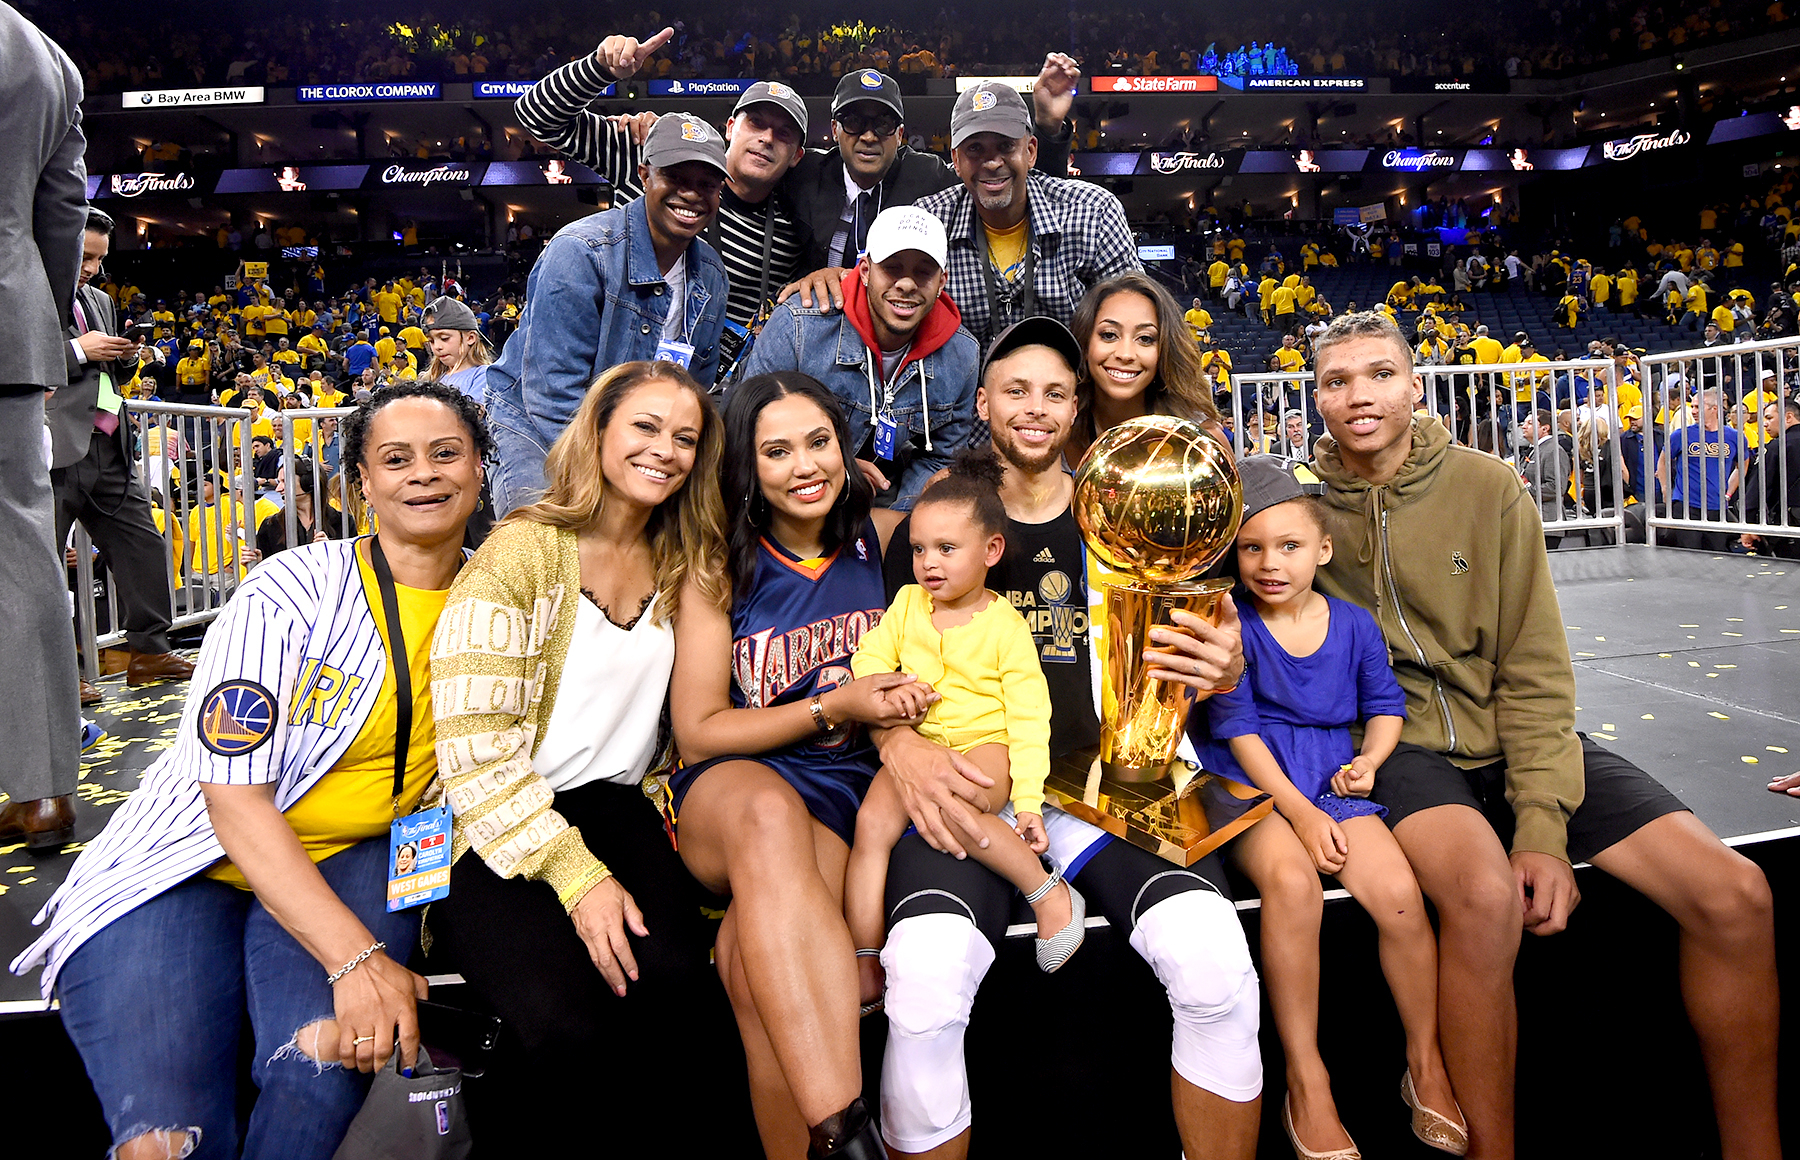 Stephen Curry #30 of the Golden State Warriors with family and friends celebrates winning the NBA Championship in Game Five against the Cleveland Cavaliers of the 2017 NBA Finals on June 12, 2017 at Oracle Arena in Oakland, California.